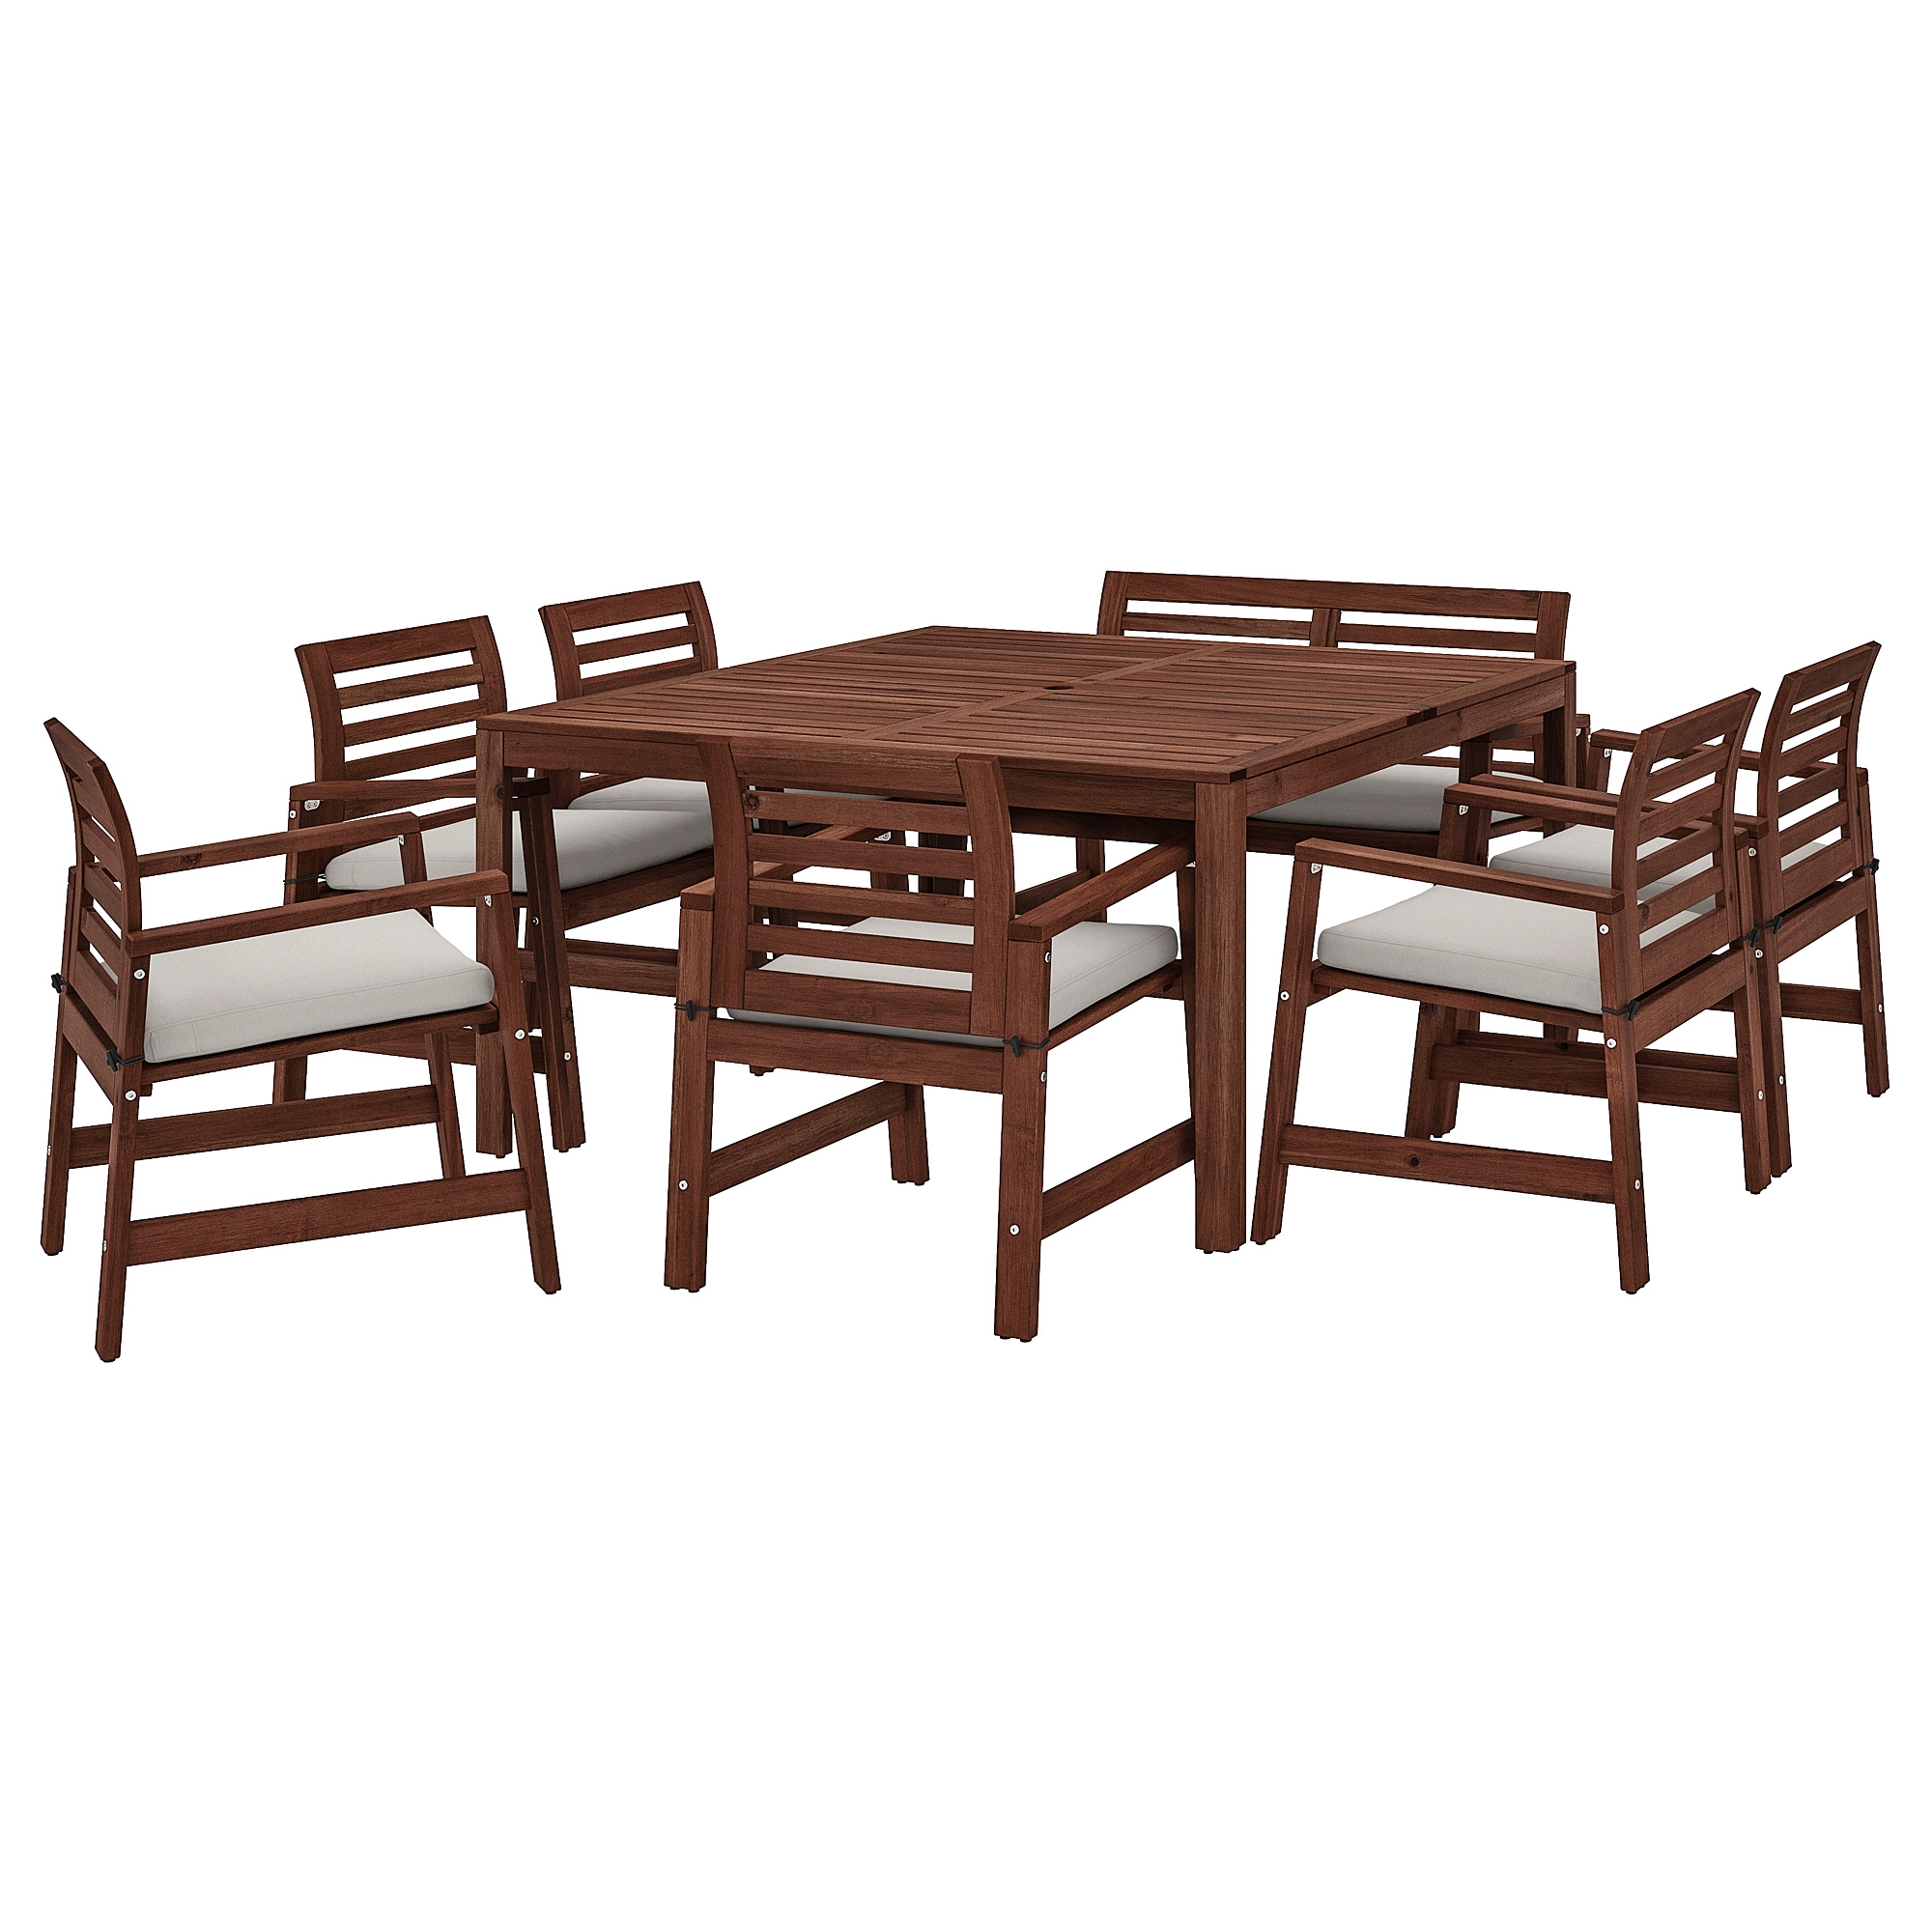 APPLARO Table 6 Chairs Armr Bench Outdoor